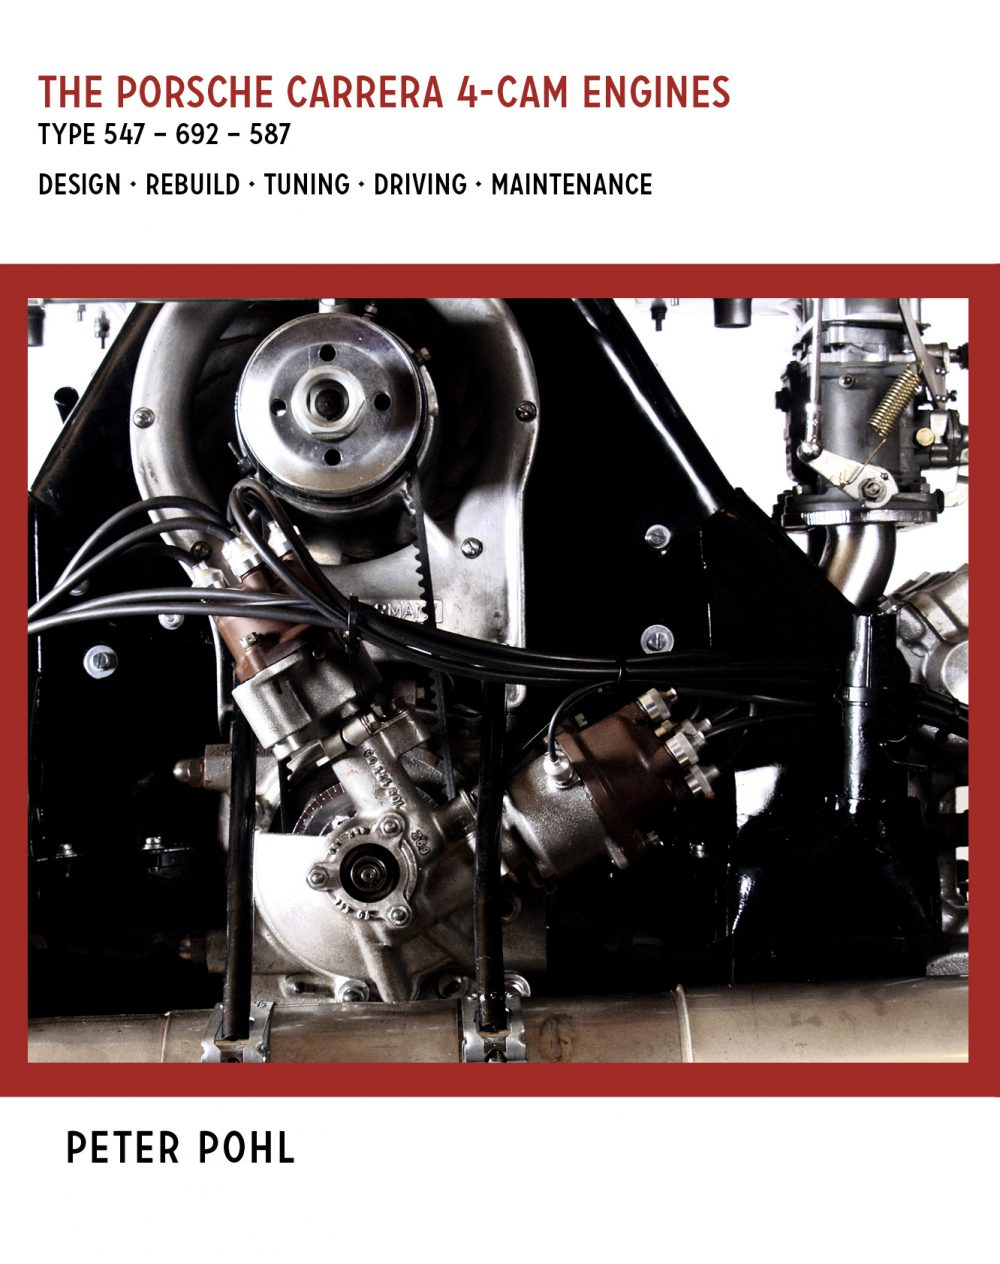 Porsche 4 Cam Engine Diagram Cutaway Cylinder Wire Diagrams 991 These Two Books About Engines Are Unexpectedly Great U2022 Petrolicious The